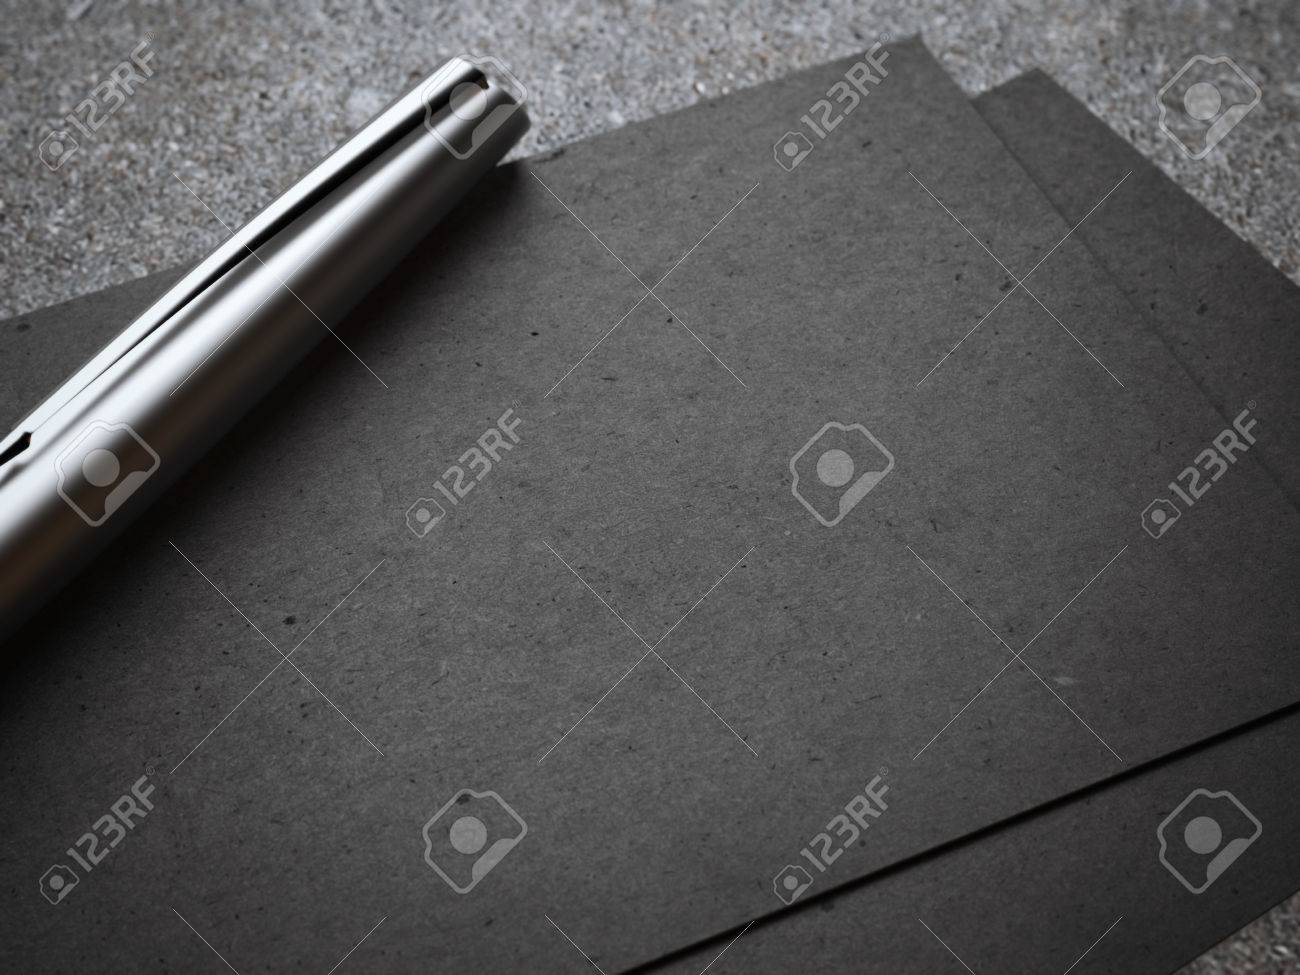 Black Business Card With Luxury Silver Pen 3d Rendering Stock Photo